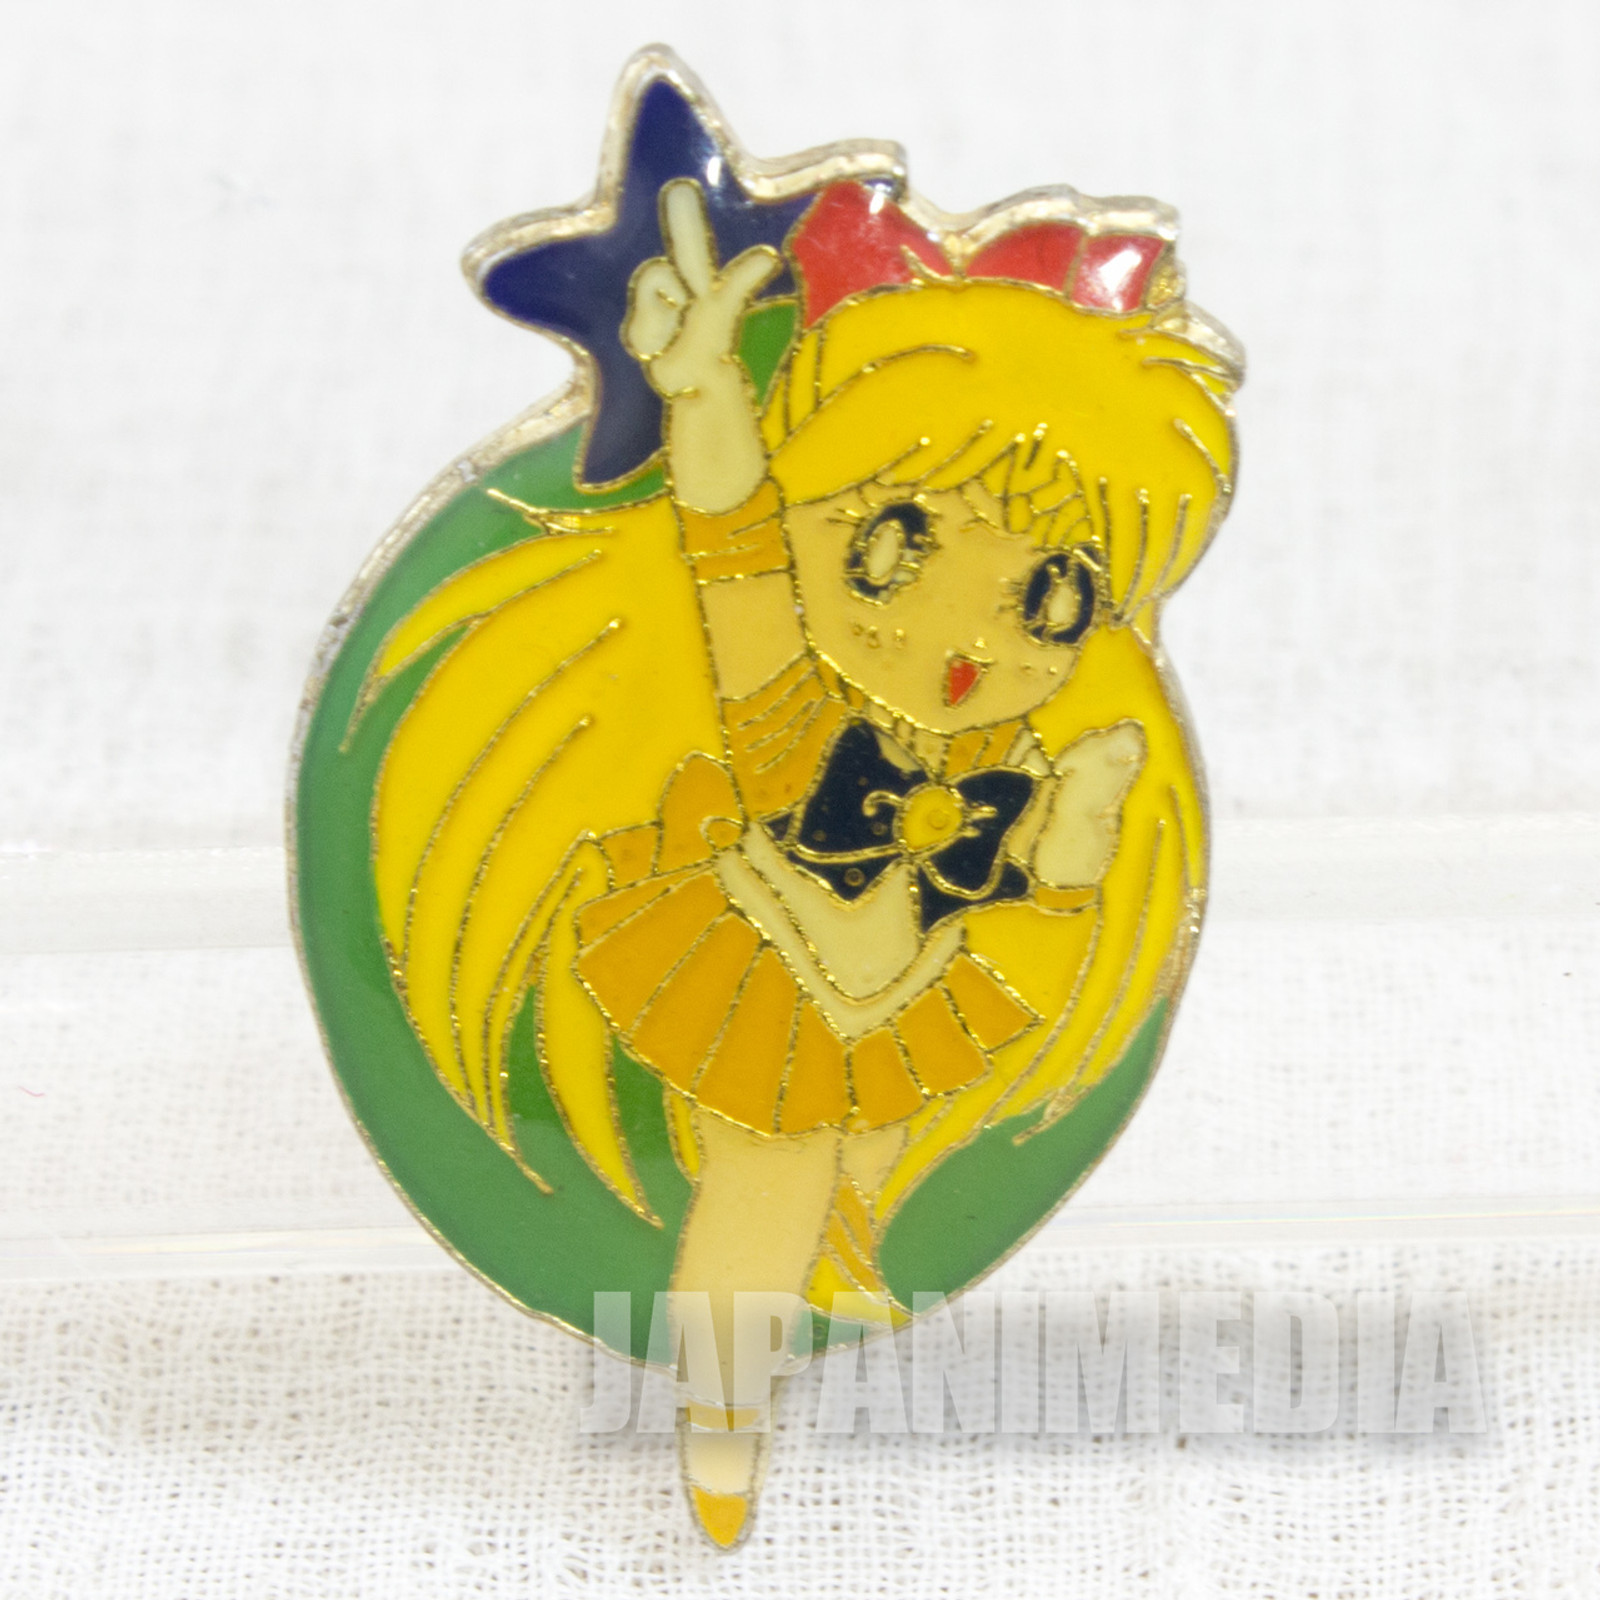 Sailor Moon Sailor Venus (Minako Aino) Metal Pins Badge JAPAN ANIME 4